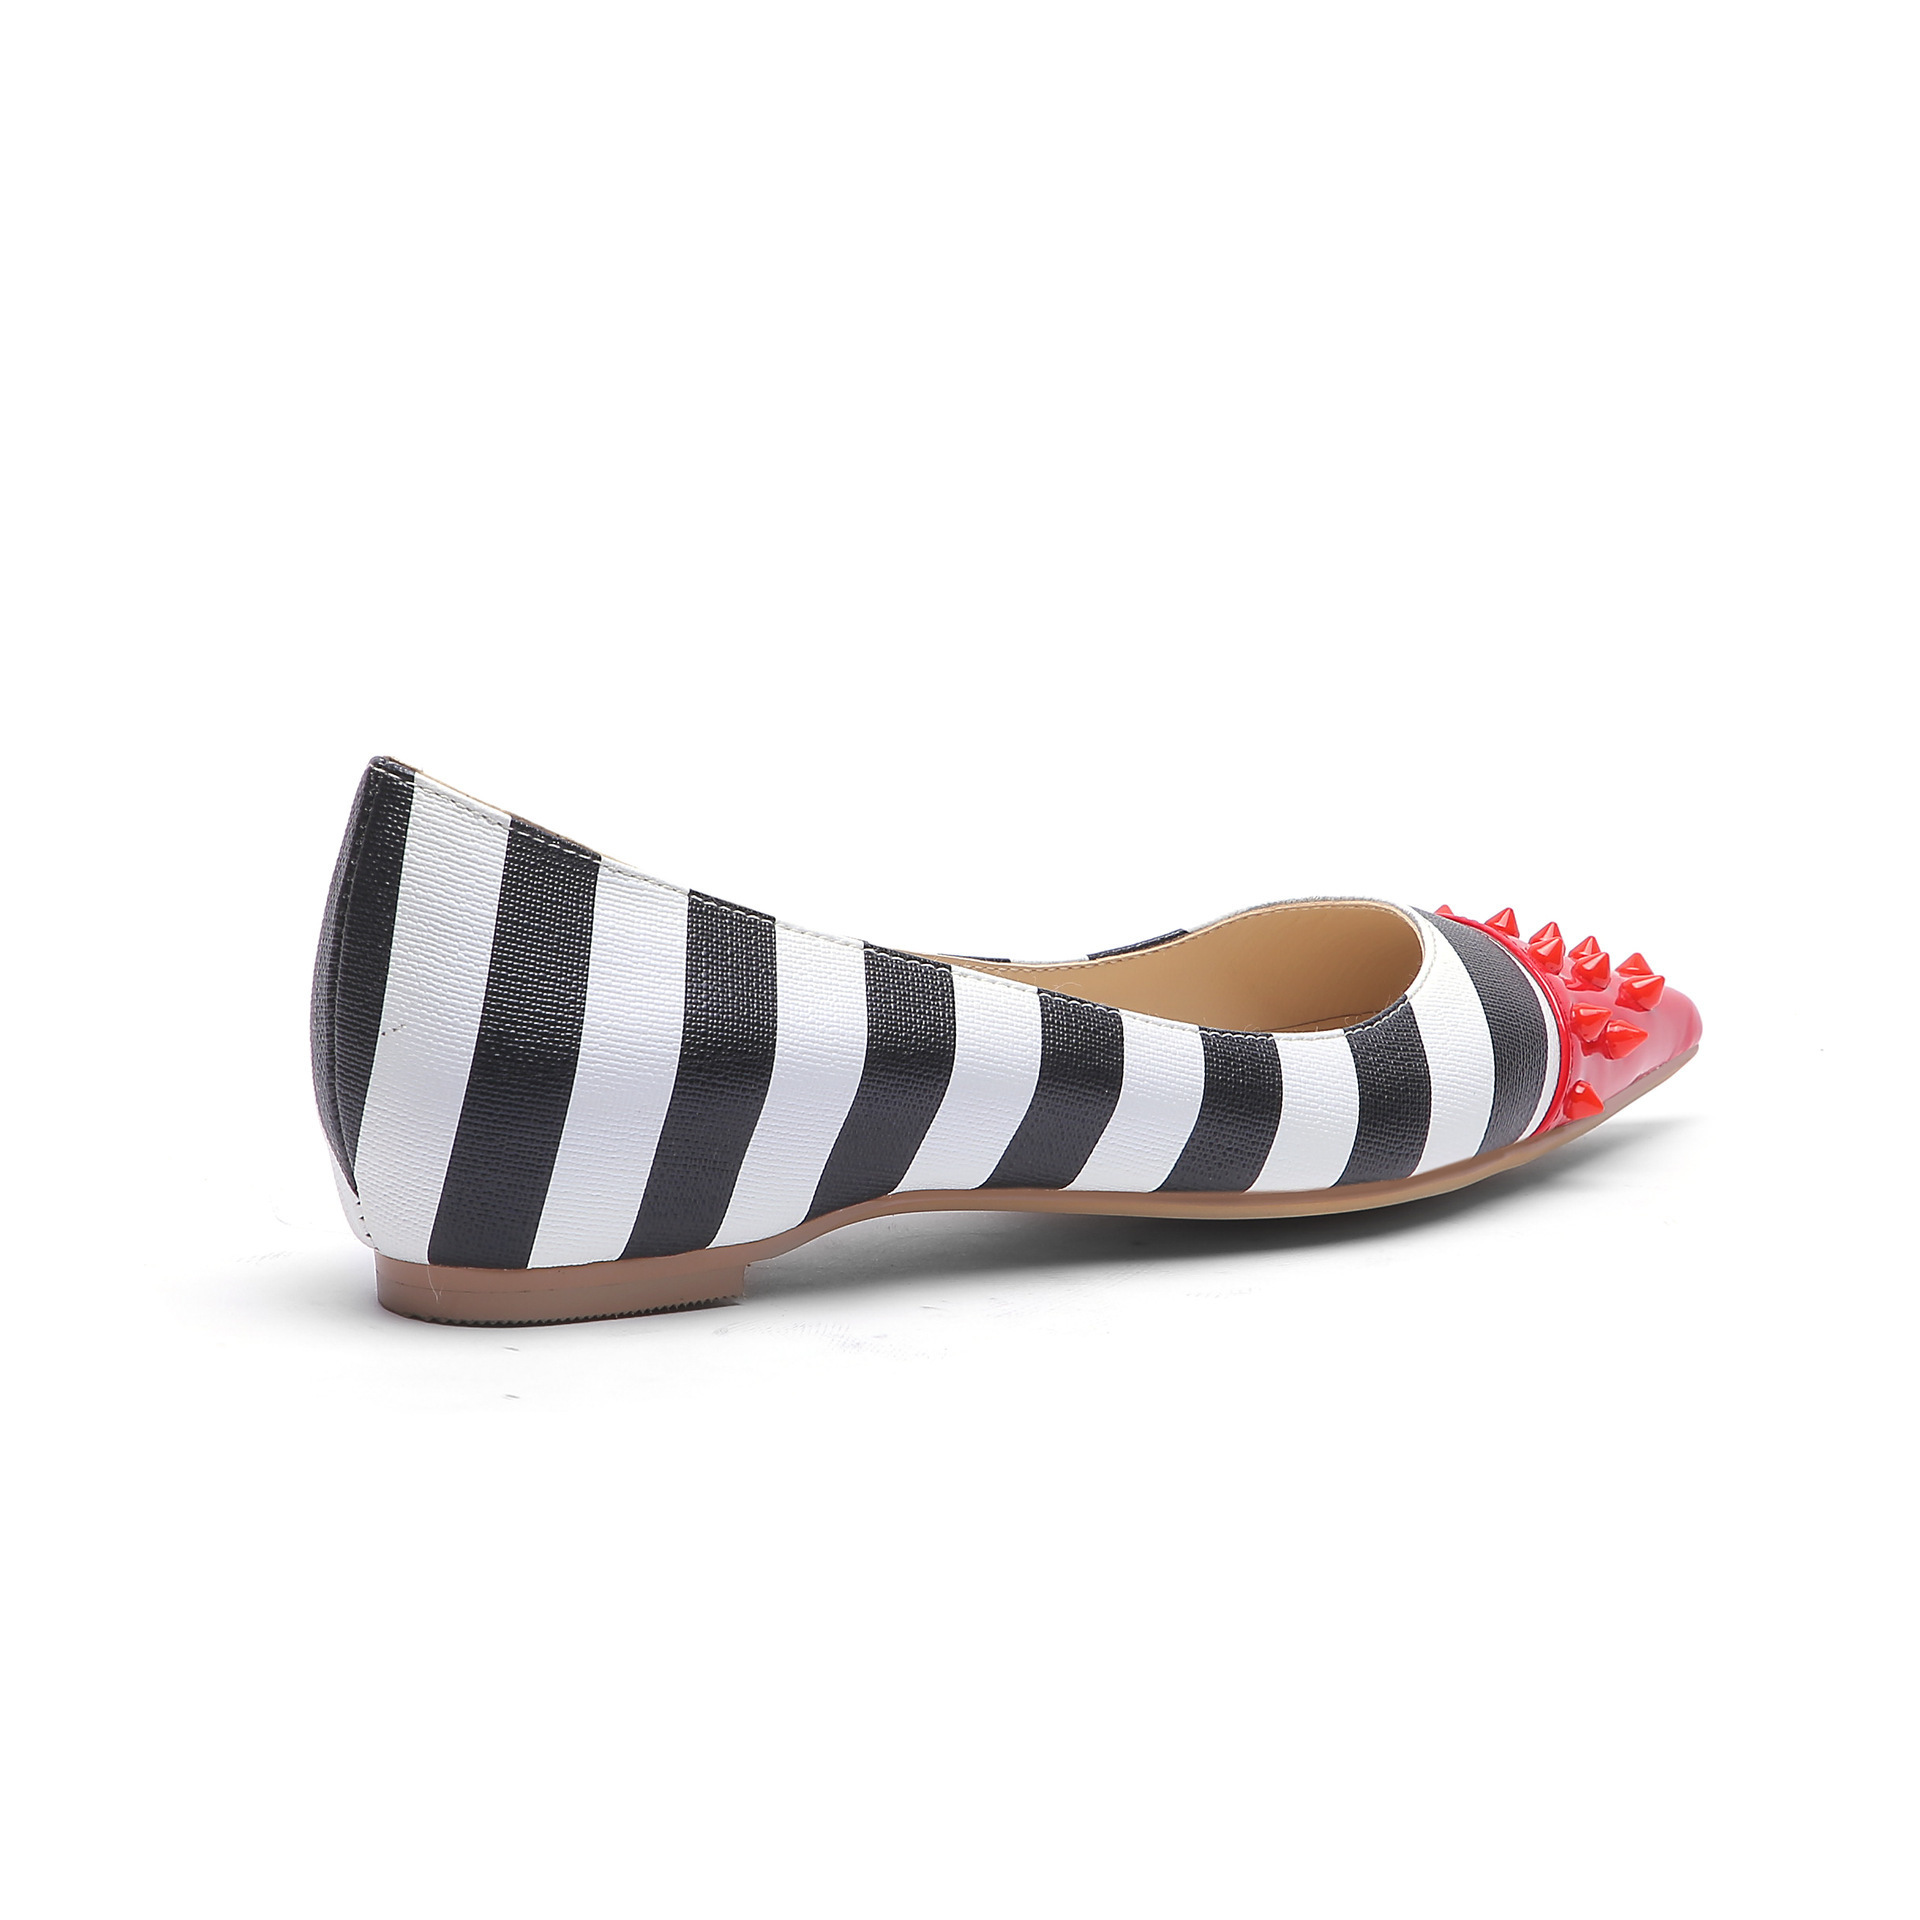 Hot2019 Breeze Summer Rivet Colour Black And White Smoothing With Concise Ma'am Latest Fashion Single Shoe Will Code 45